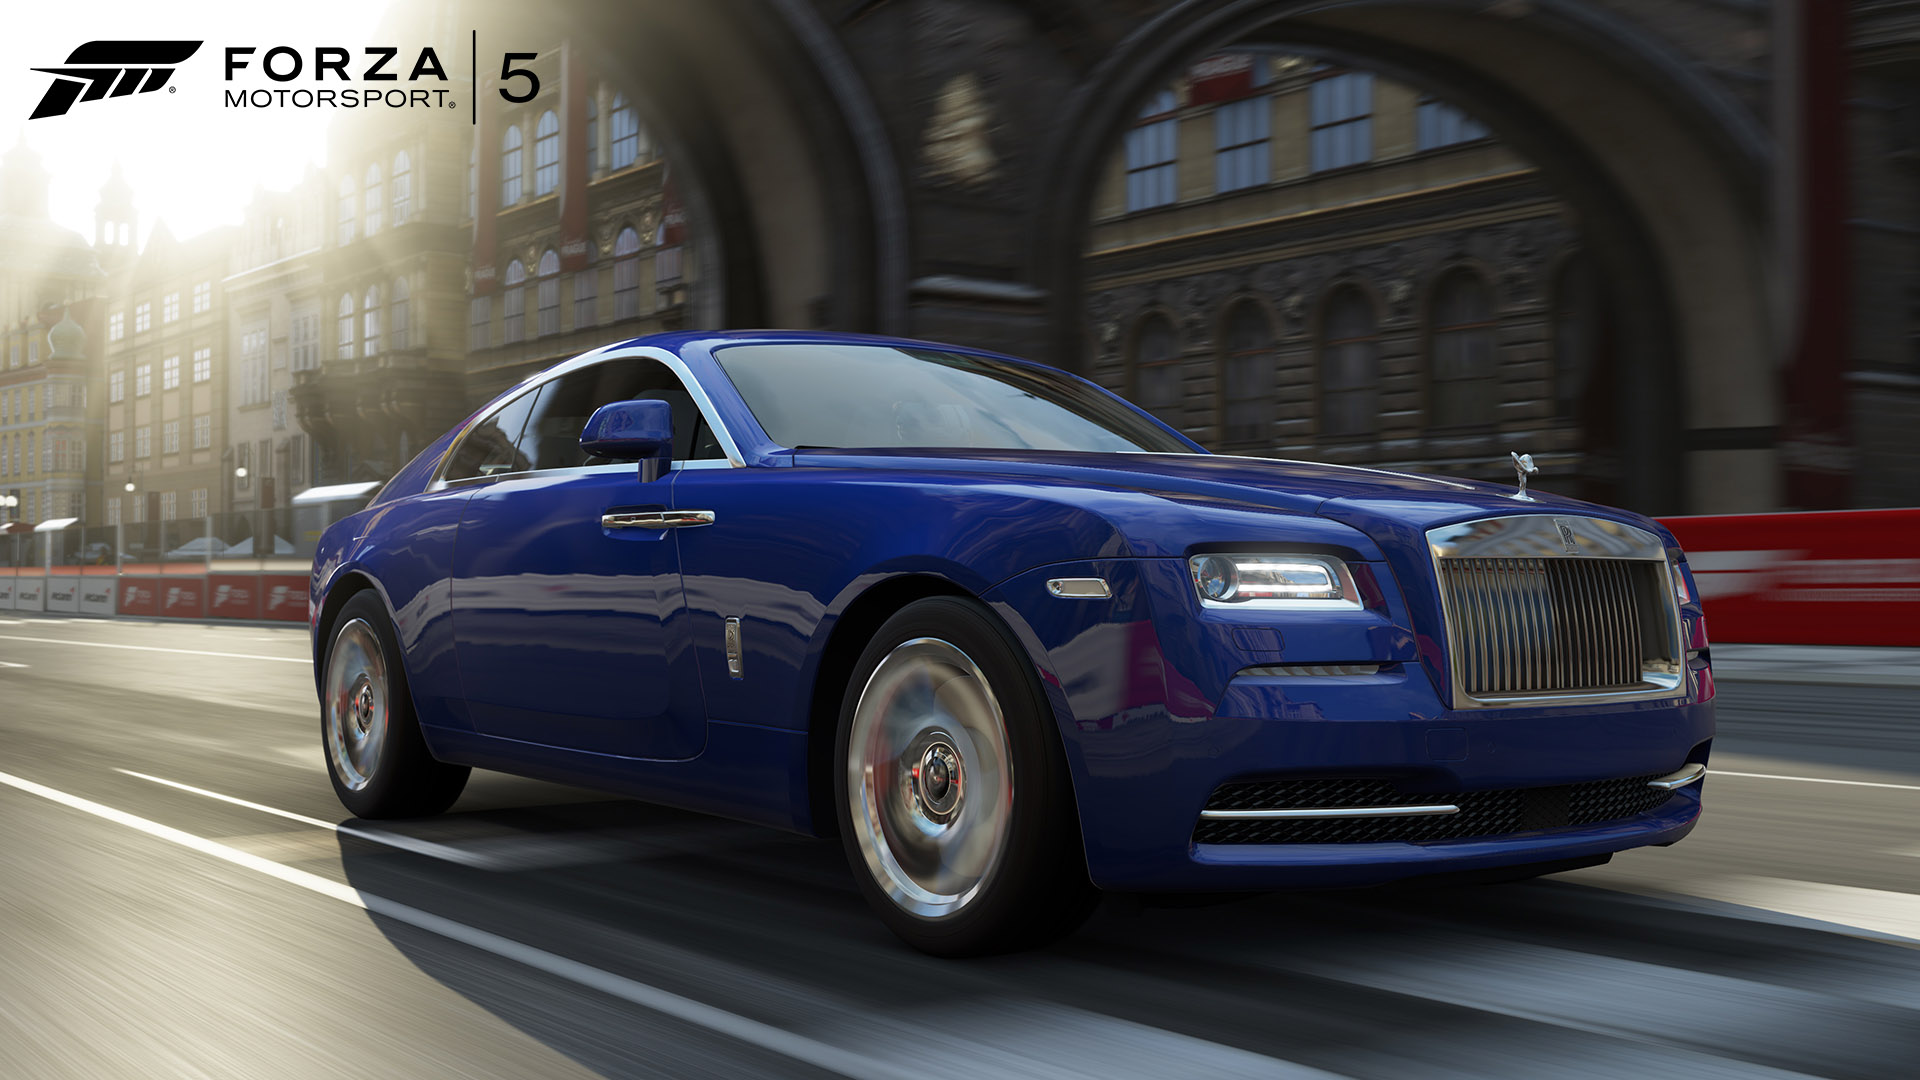 Rolls-Royce Wraith in Forza Motorsport 5 for Xbox One